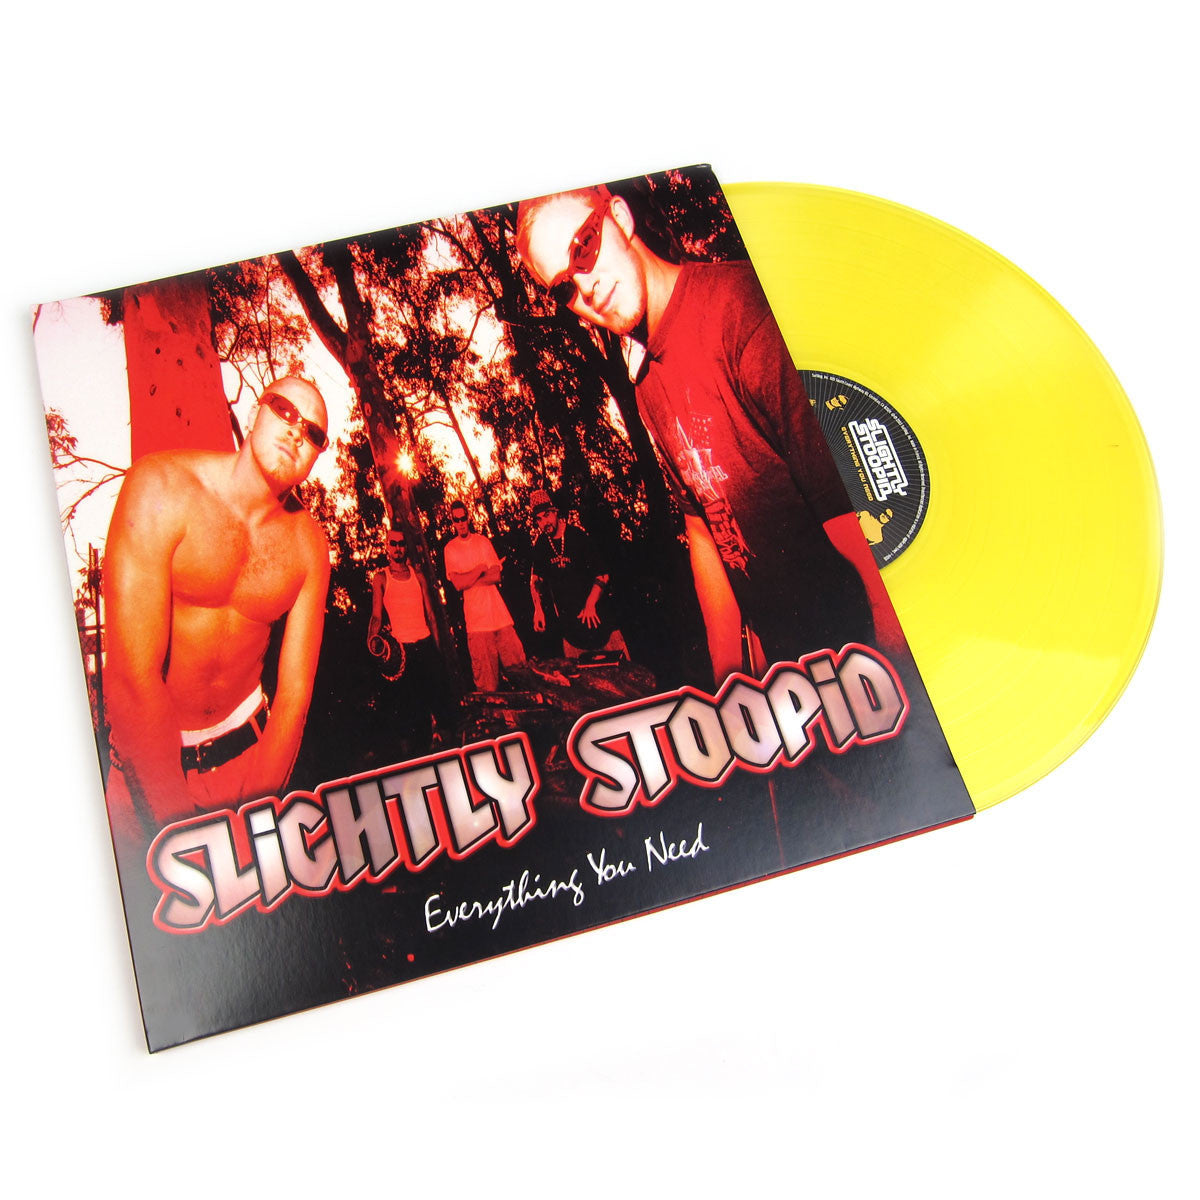 Slightly Stoopid: Everything You Need (Colored Vinyl) Vinyl LP